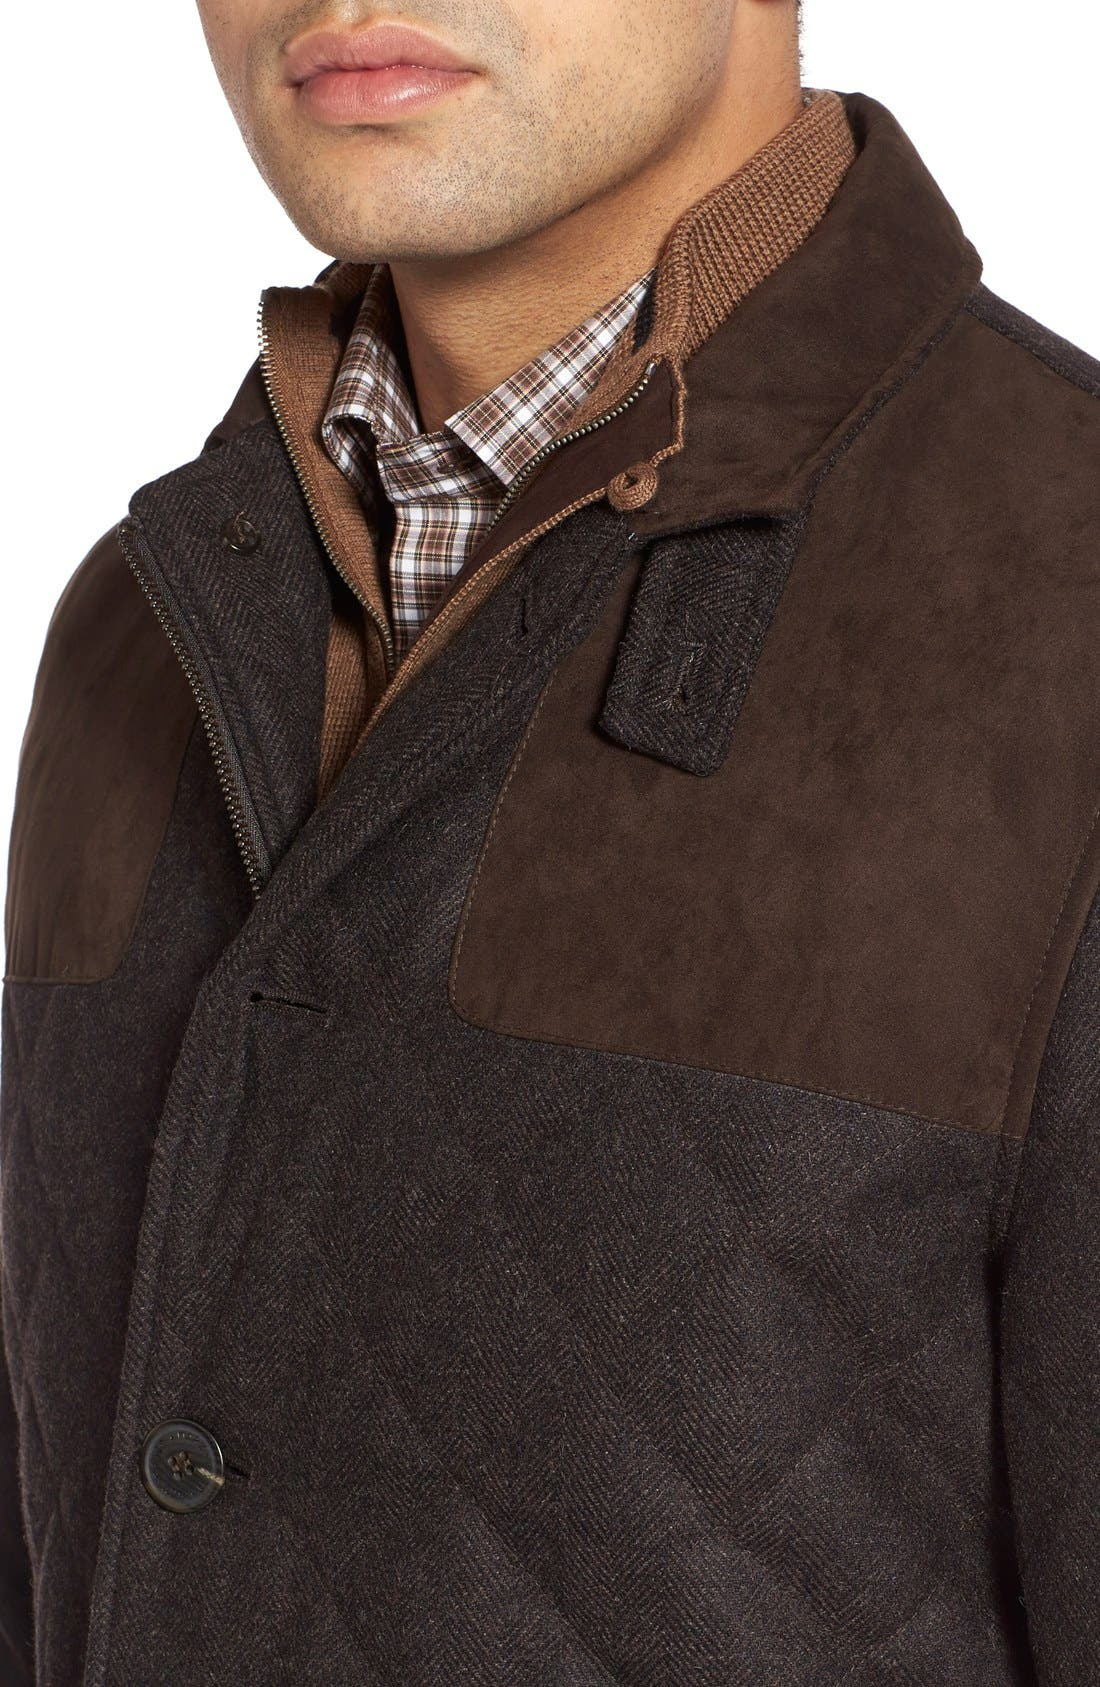 'Shooter' Wool Blend Quilted Jacket,                             Alternate thumbnail 17, color,